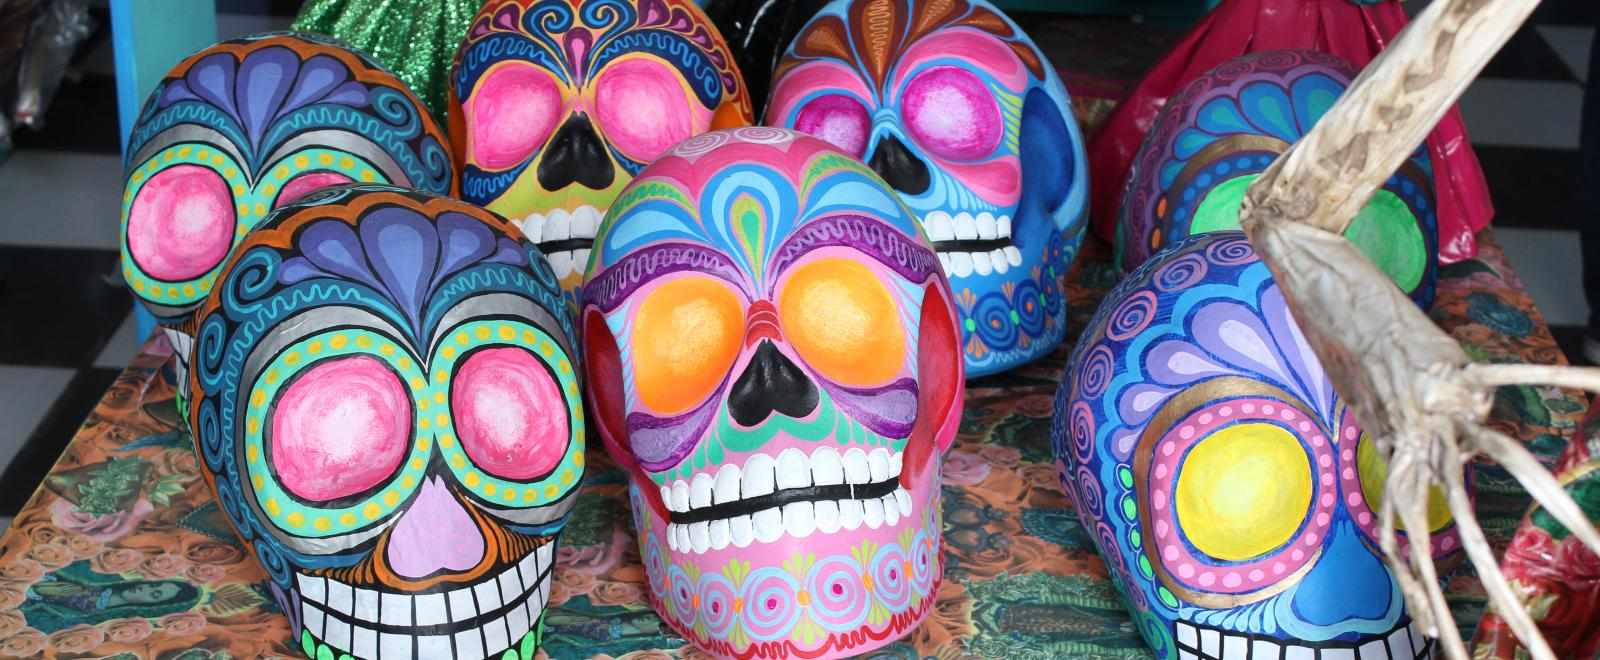 A sugar skull hand painted and on sale at a market in Mexico.